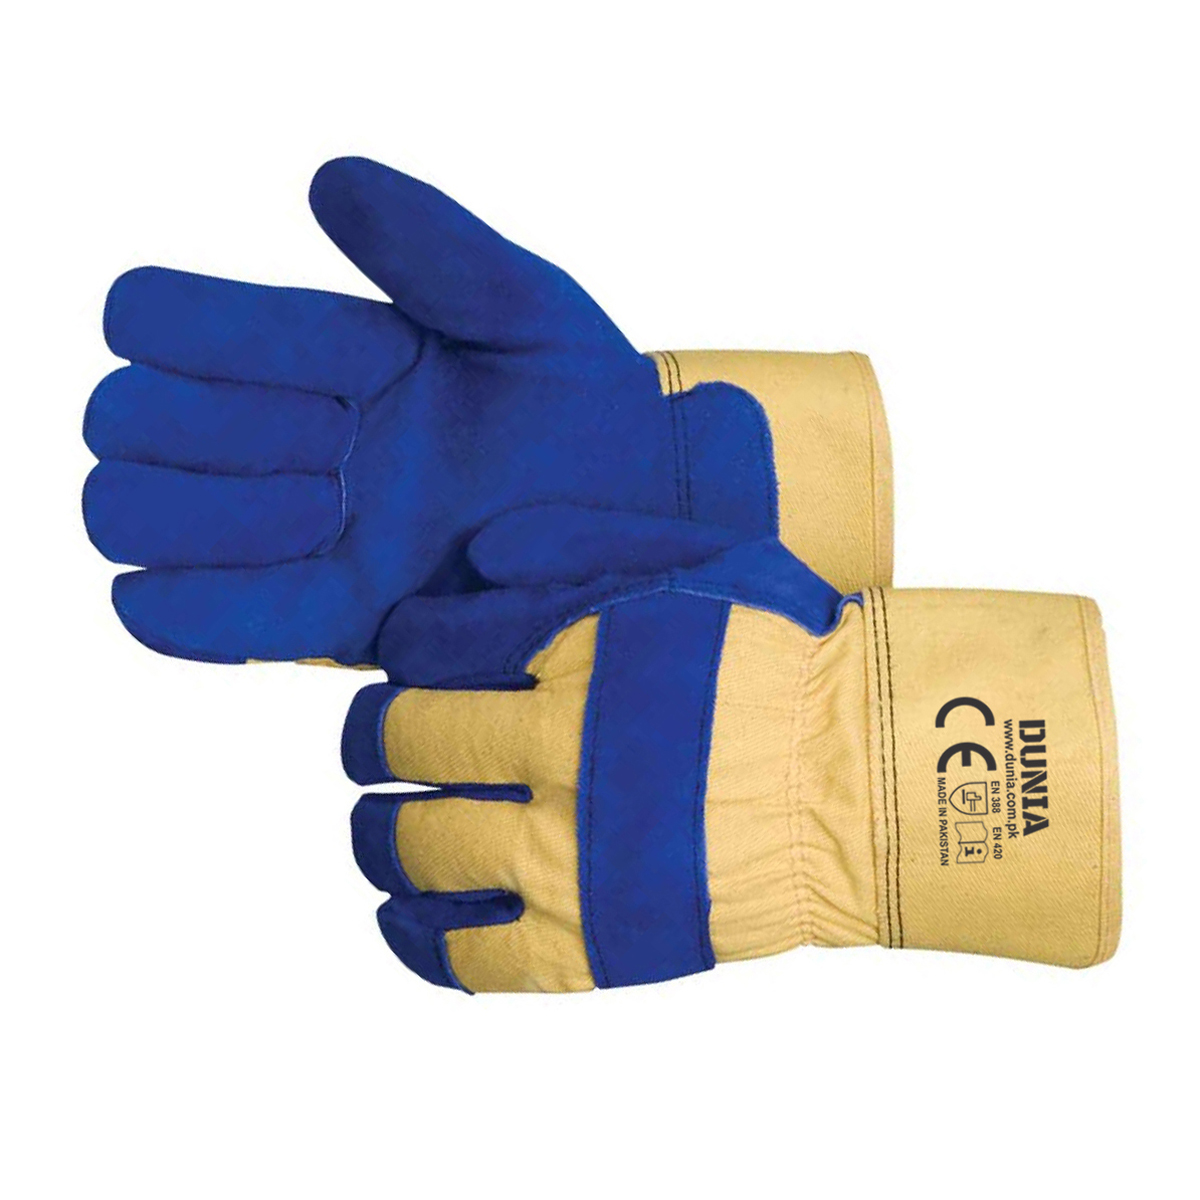 DTC-741 Blue Leather Winter Gloves